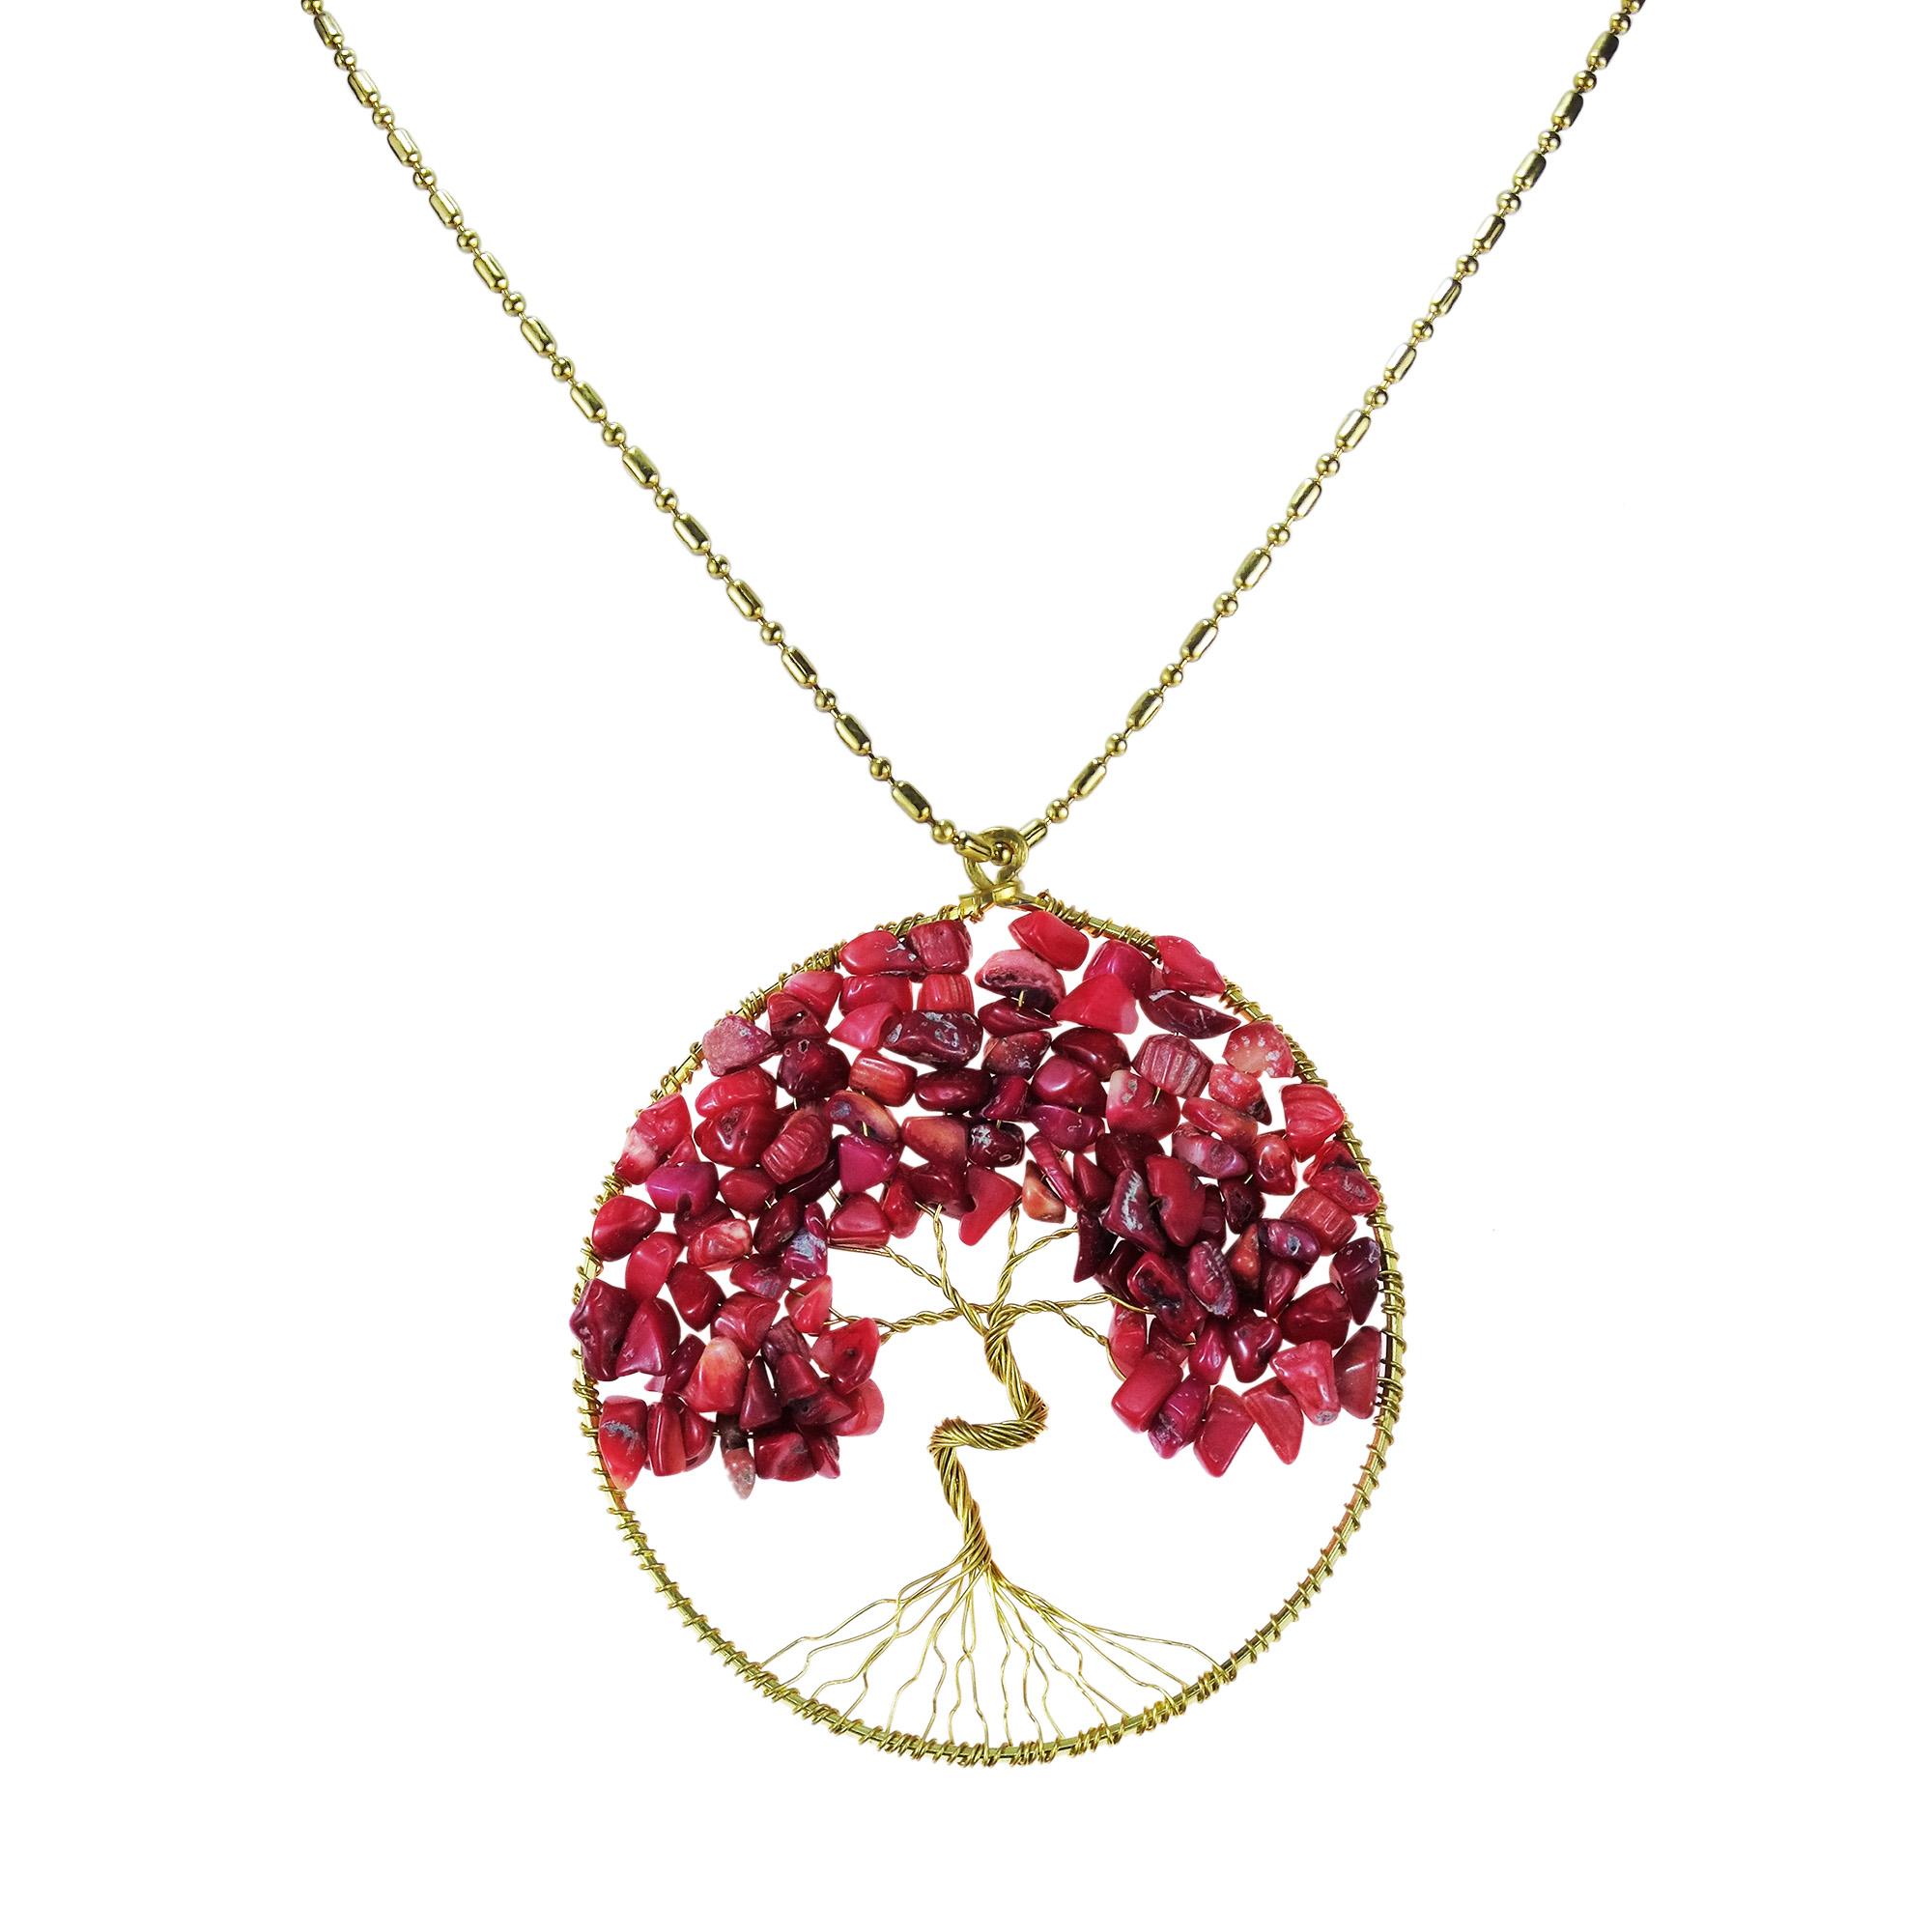 studio gallery chain product red giulietta and pendant long on coral designs